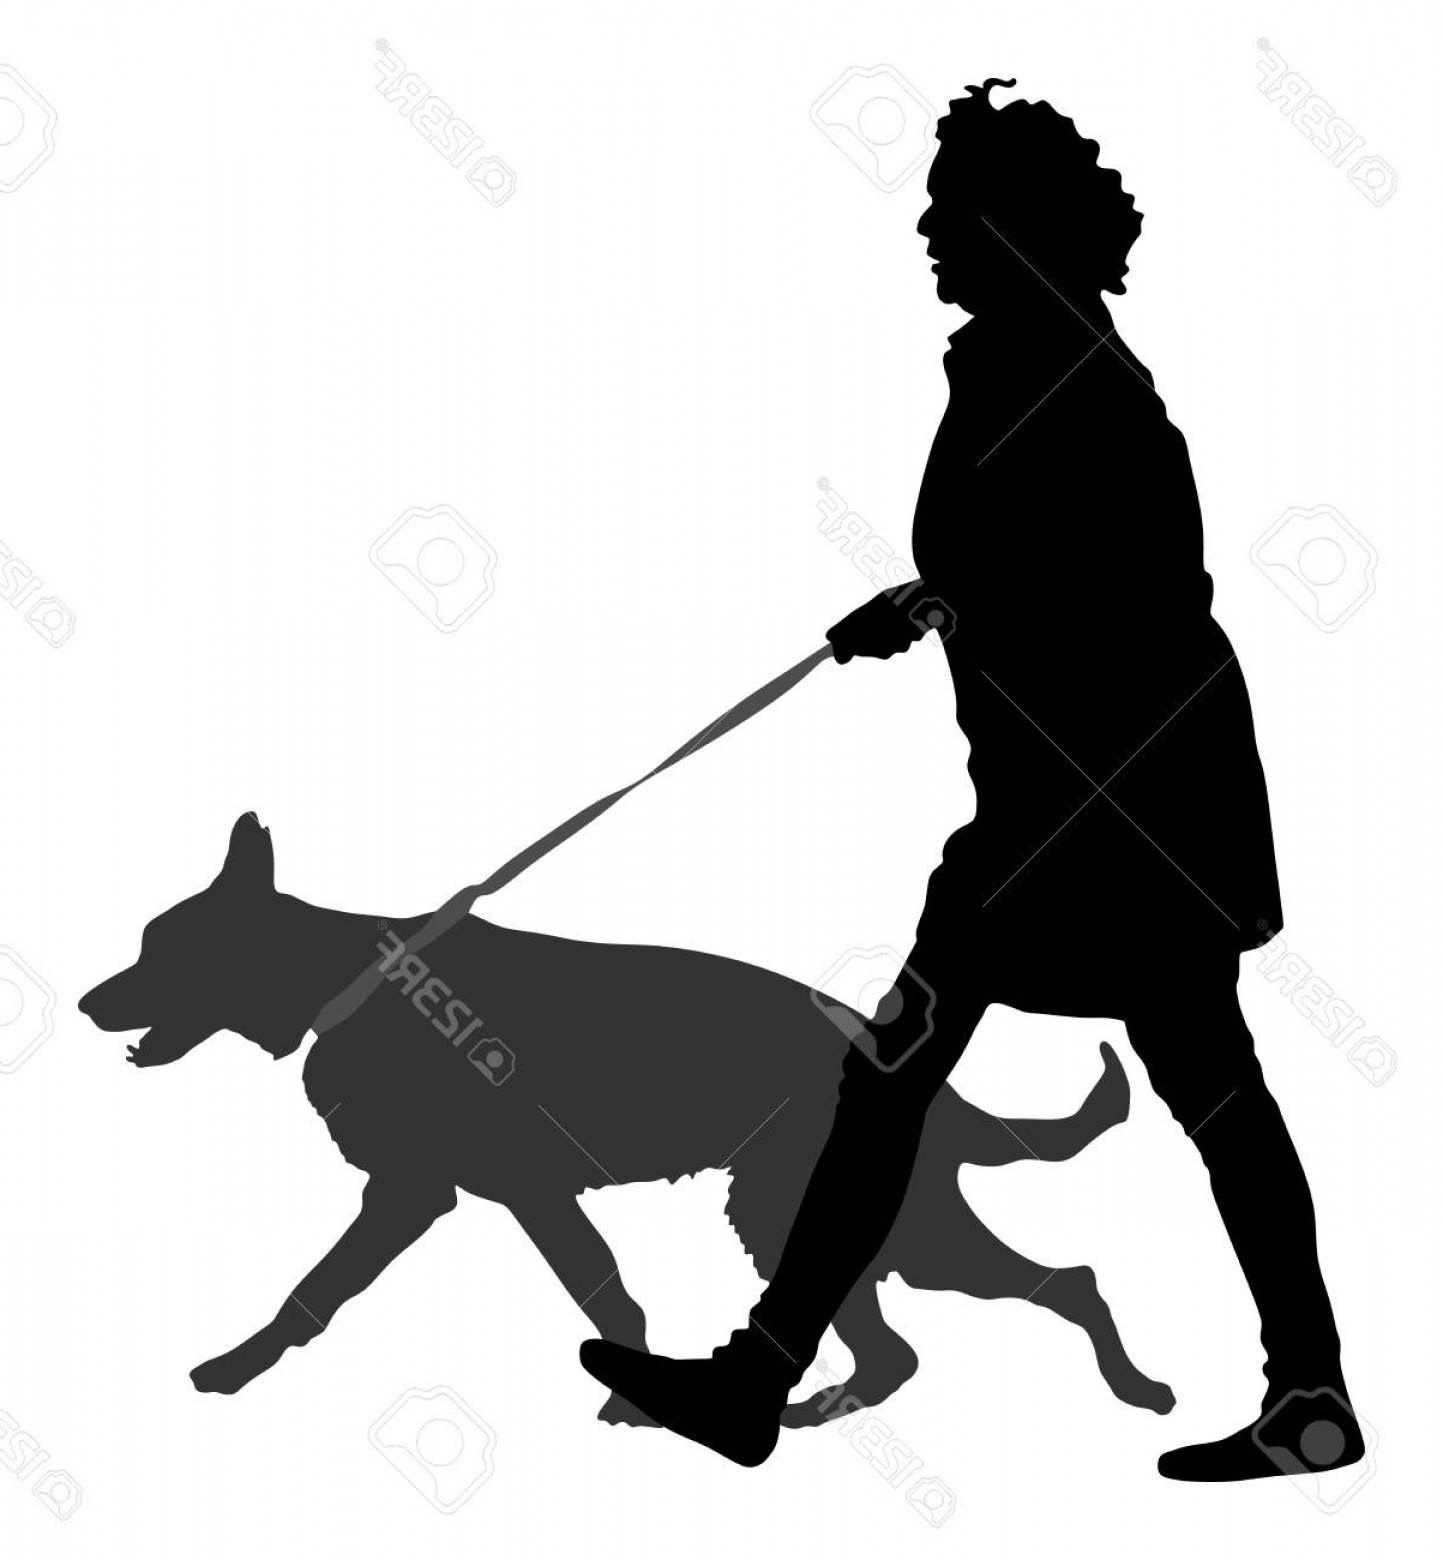 Vector Silhouette Dog Walk: Photostock Vector Owner Girl And Dog Walking In The City Woman Walking With Dog Vector Silhouette Illustration Isolate